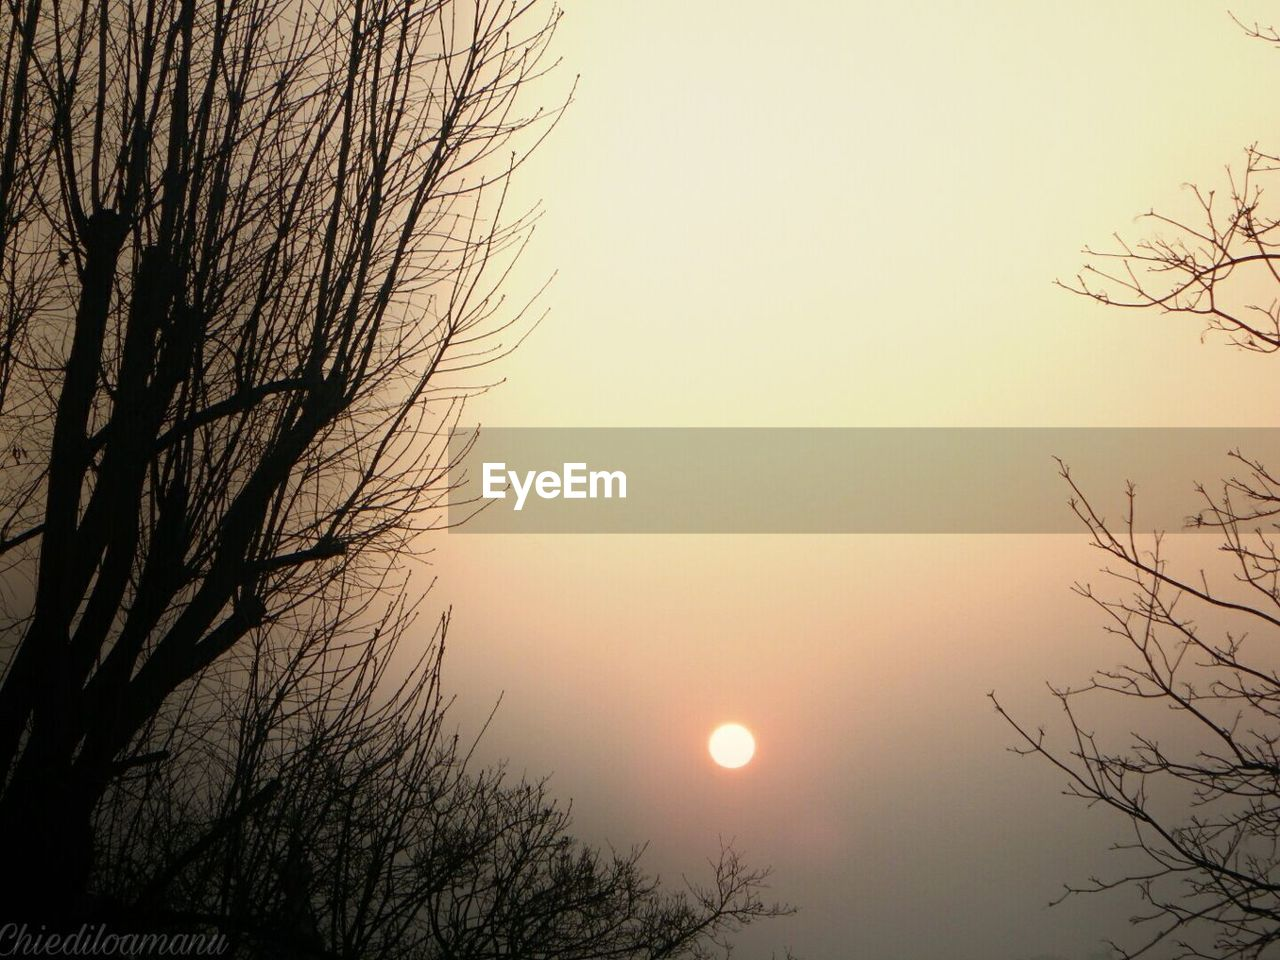 sun, bare tree, nature, beauty in nature, tree, tranquility, sunset, scenics, branch, tranquil scene, no people, silhouette, outdoors, sky, low angle view, clear sky, moon, day